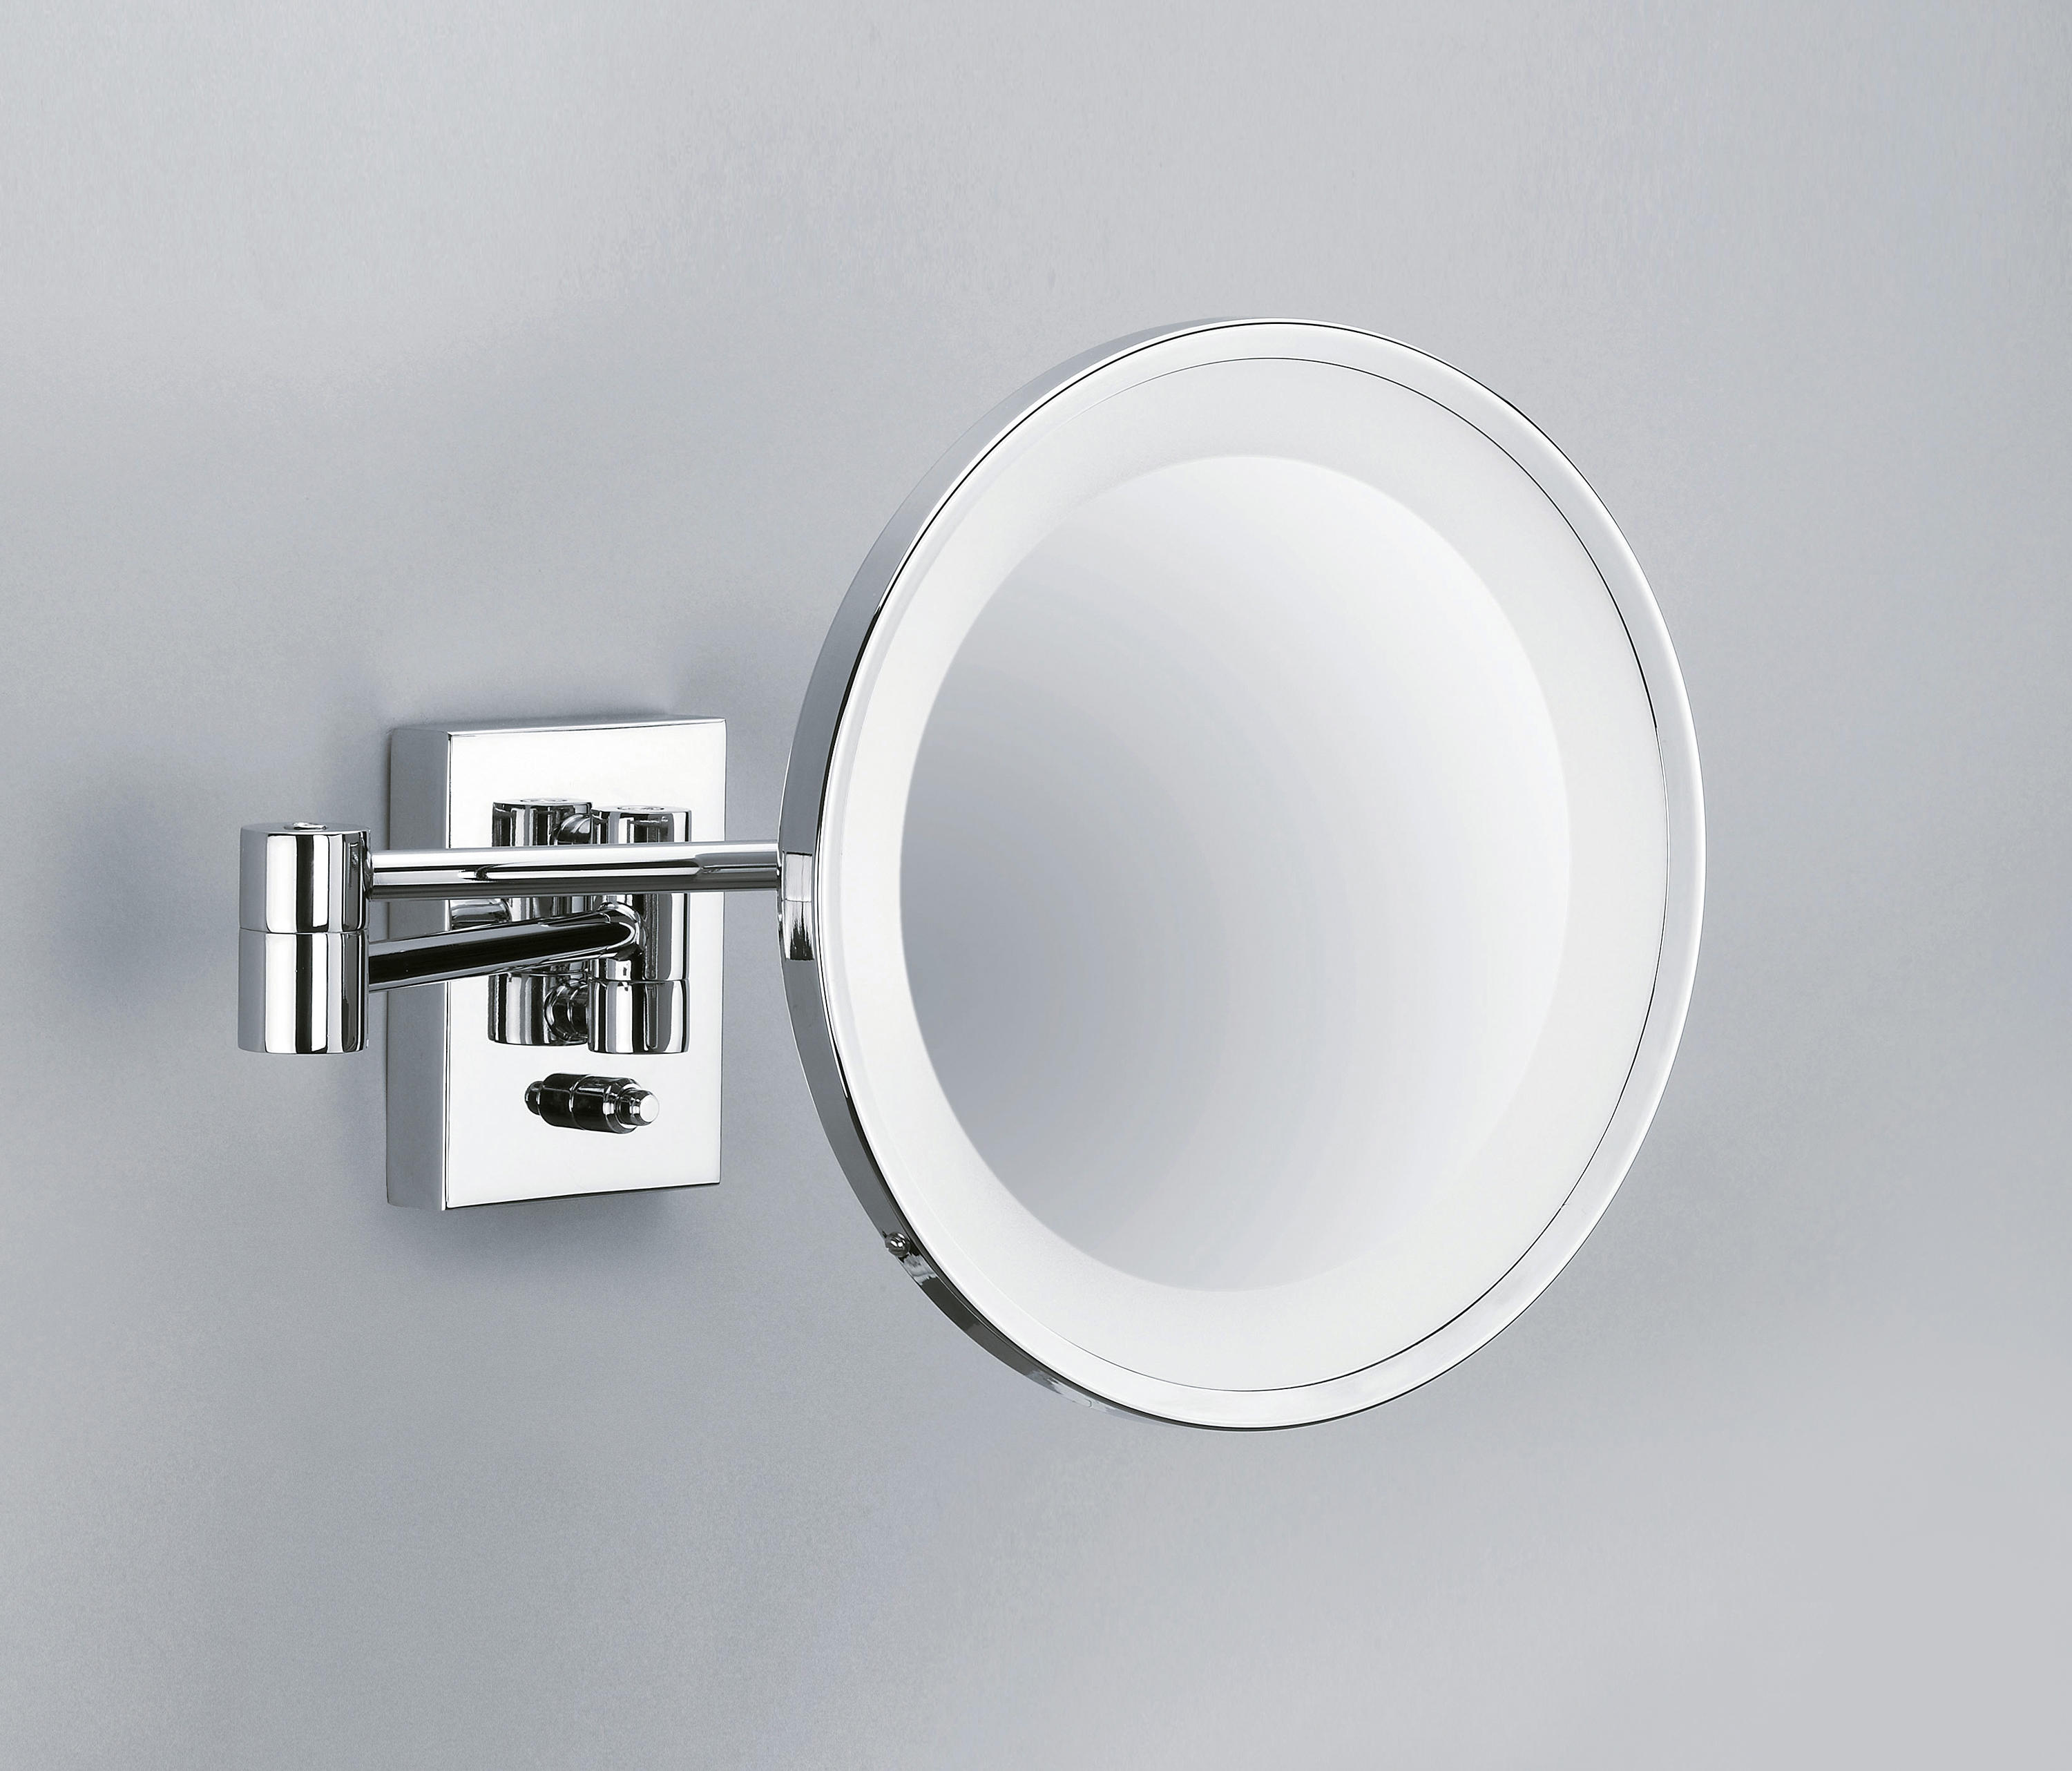 bs 40 pl shaving mirrors from decor walther architonic. Black Bedroom Furniture Sets. Home Design Ideas